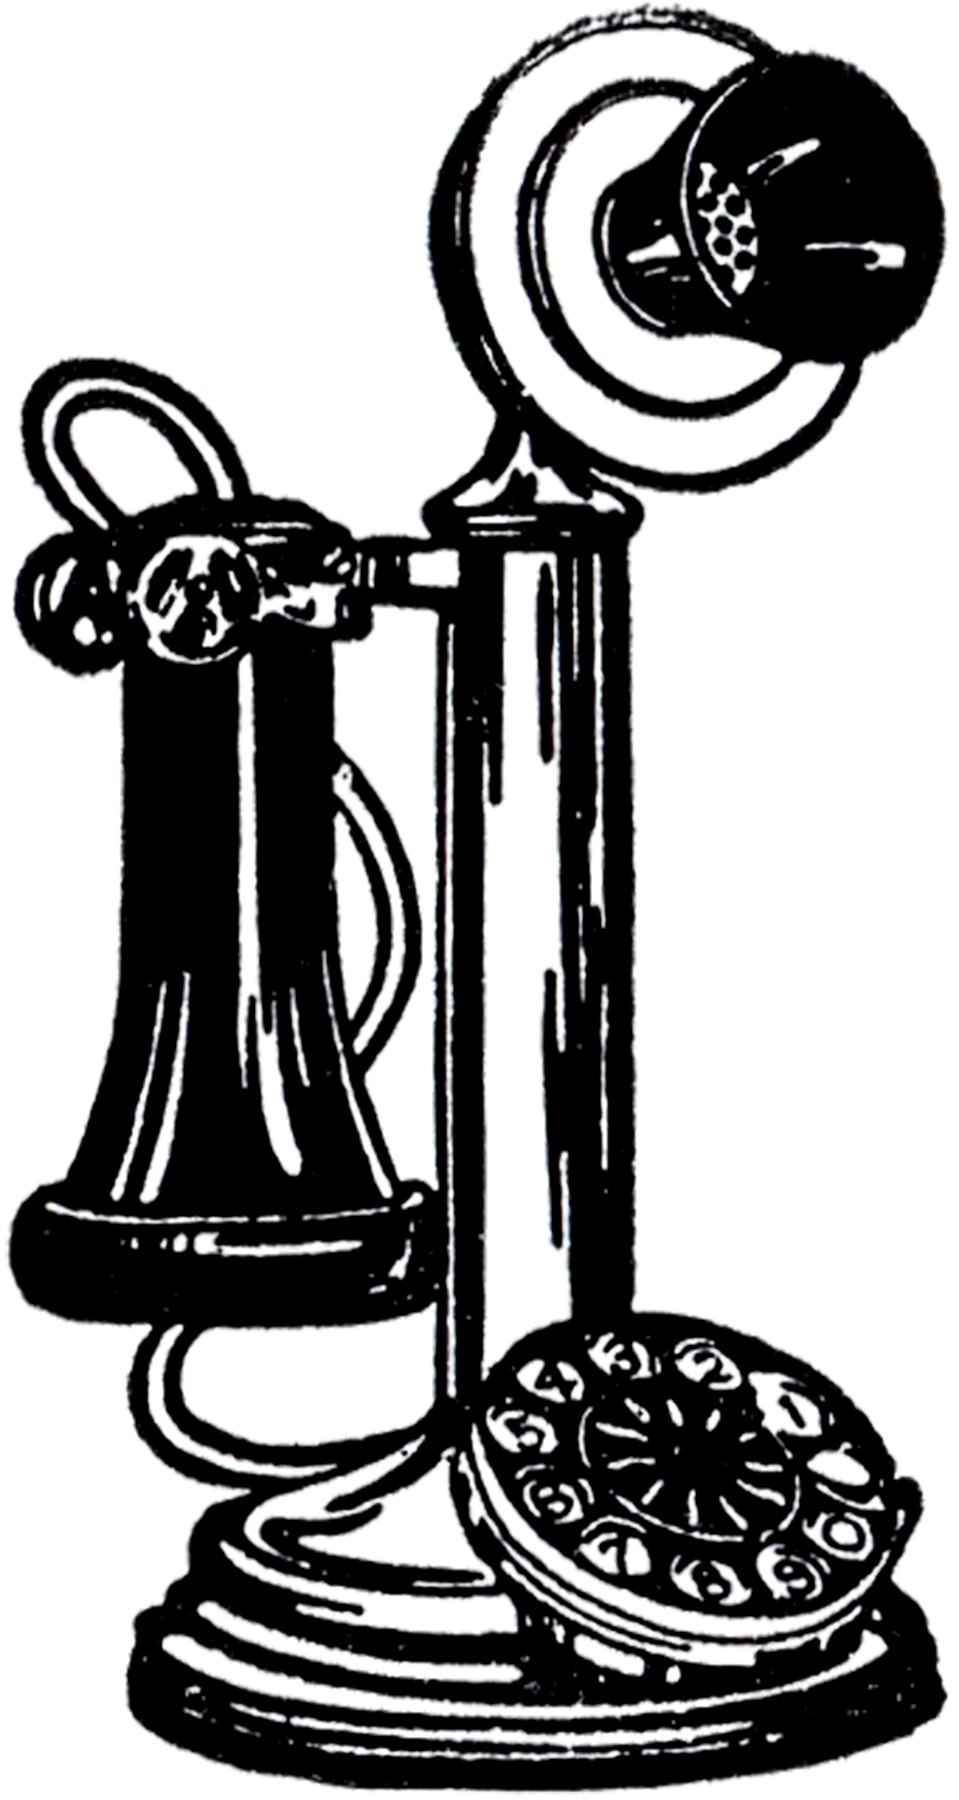 png Old free download best. Pole clipart vintage telephone